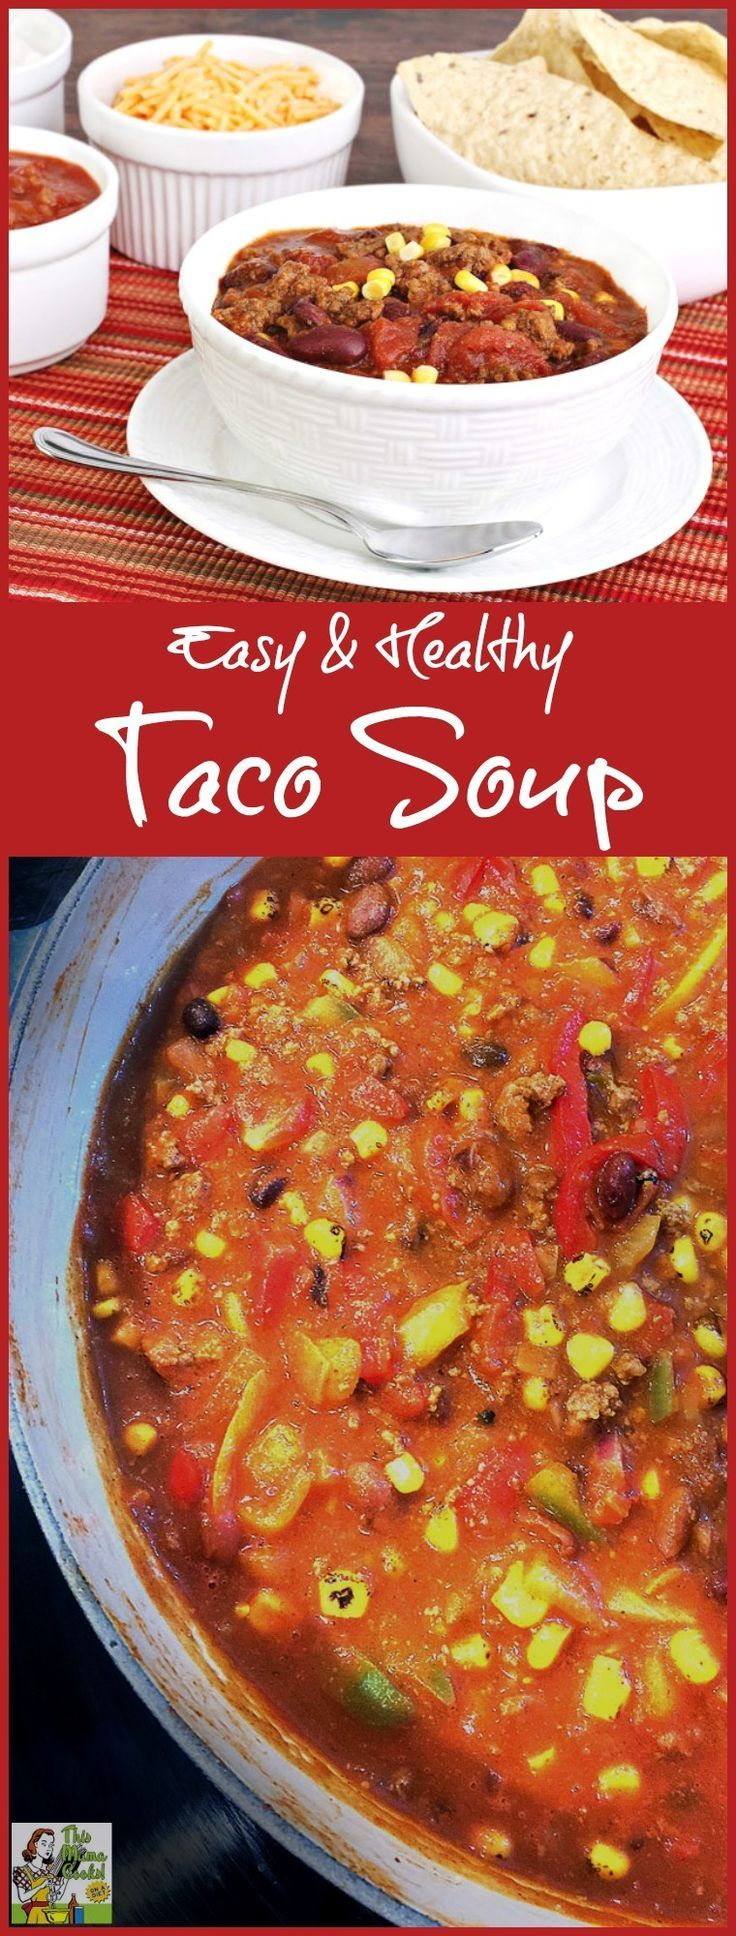 Looking for an Easy & Healthy Taco Soup recipe? This recipe is based on the Weight Watchers taco soup recipe and is even healthier and tastier! This stove top healthy taco soup recipe is easily turned into a slow cooker taco soup recipe, too. Click here t